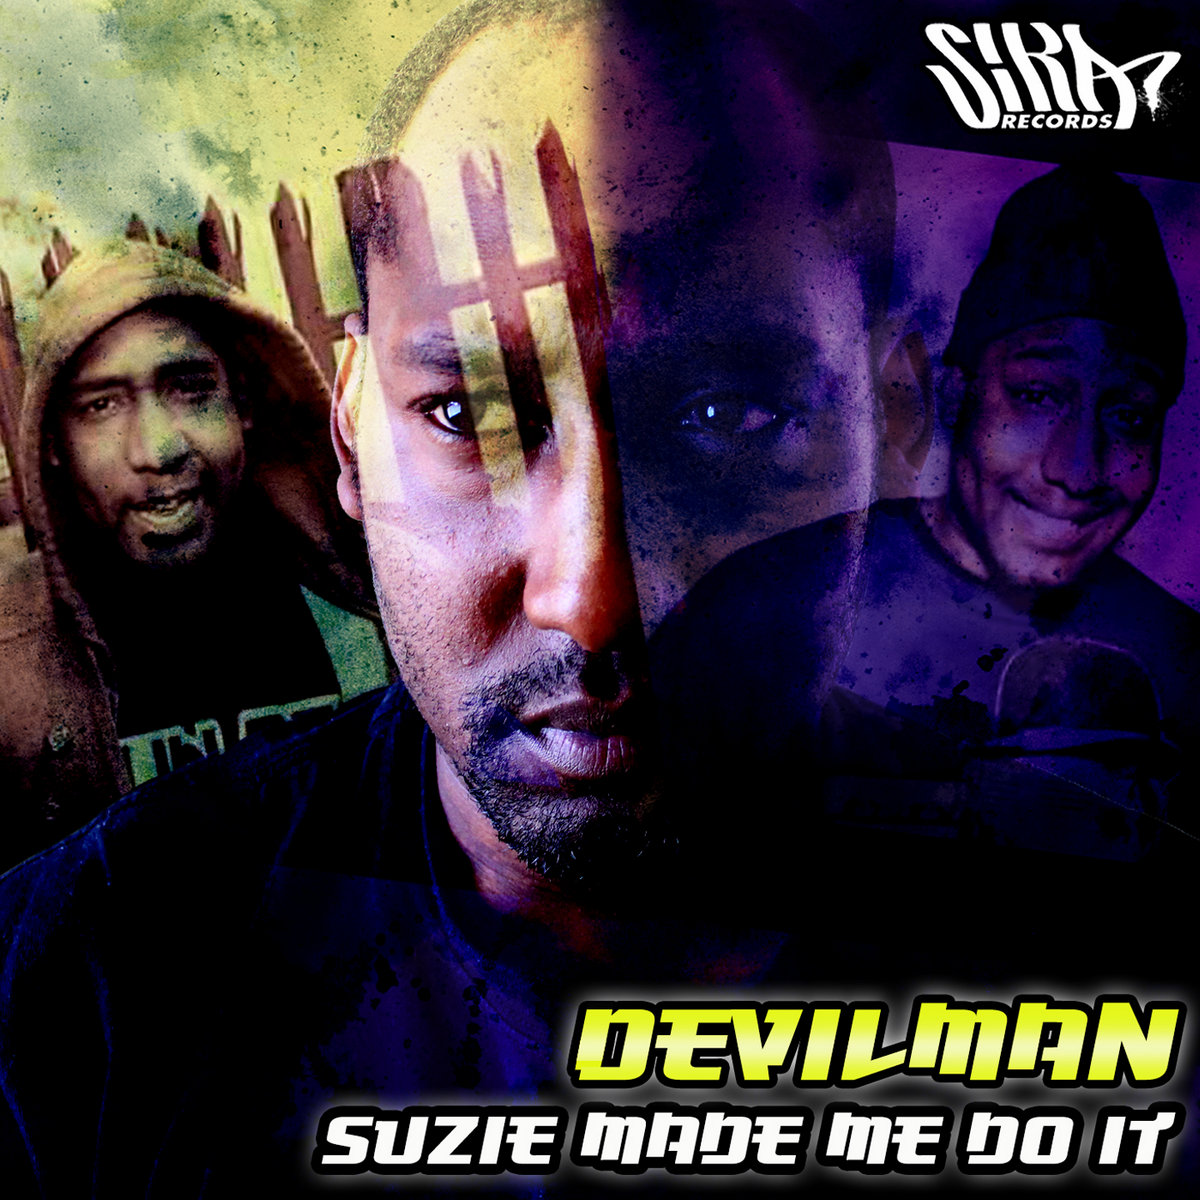 devilman drum and bass father mp3 download